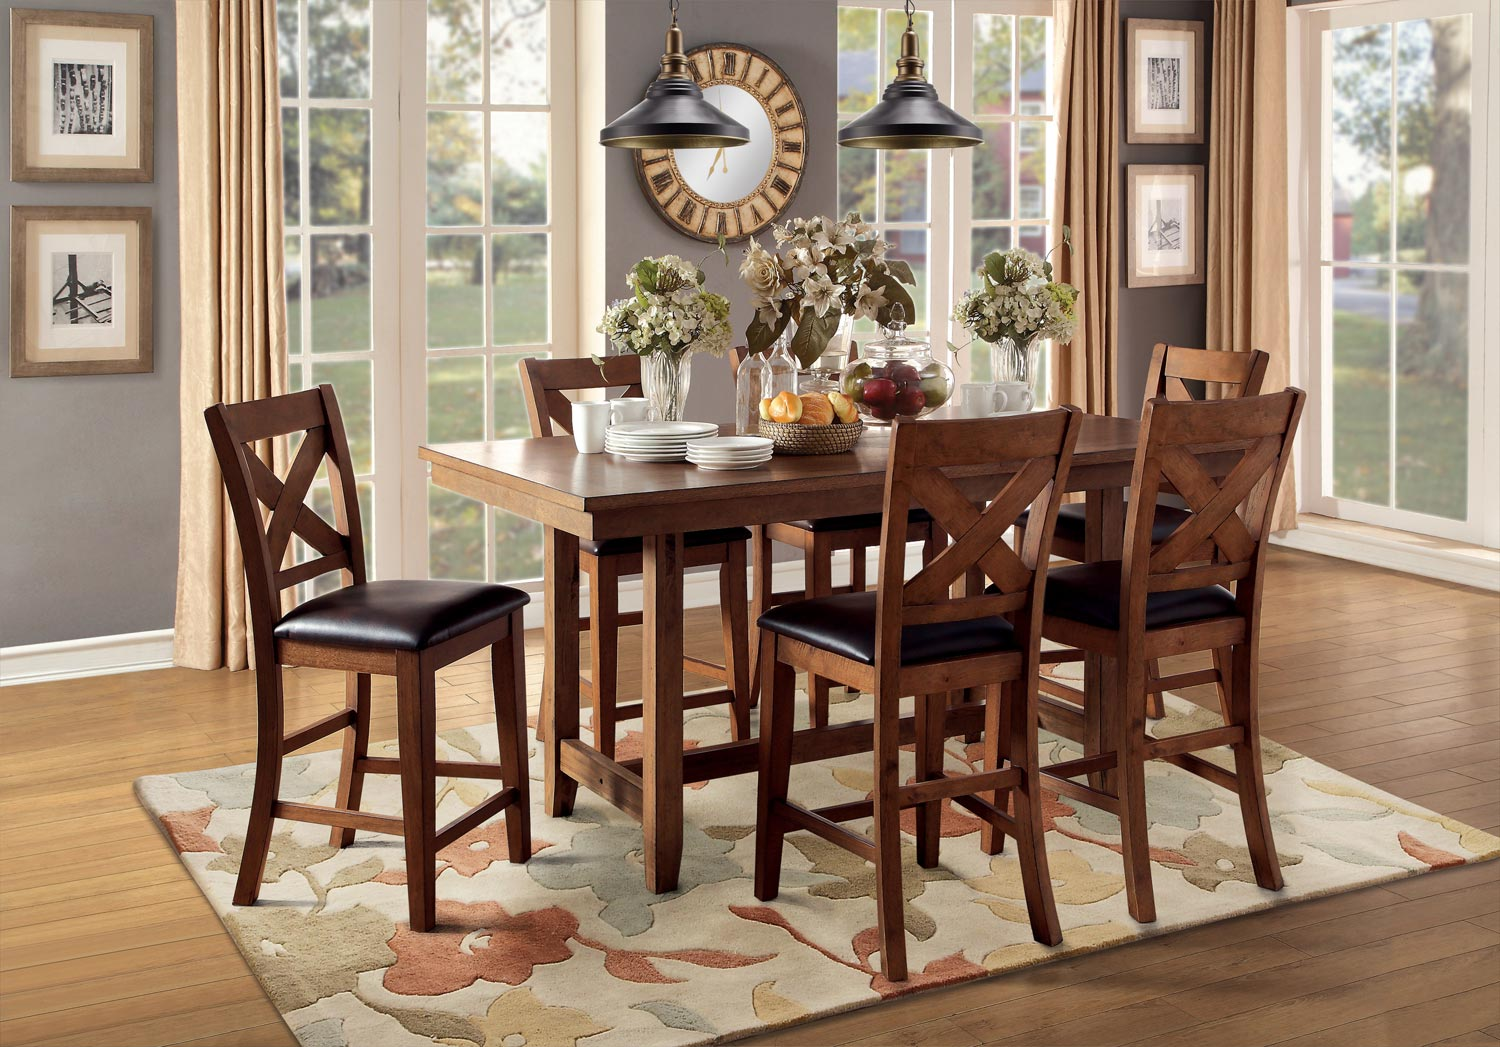 Homelegance Burrillville Trestle Counter Height Dining Set - Oak